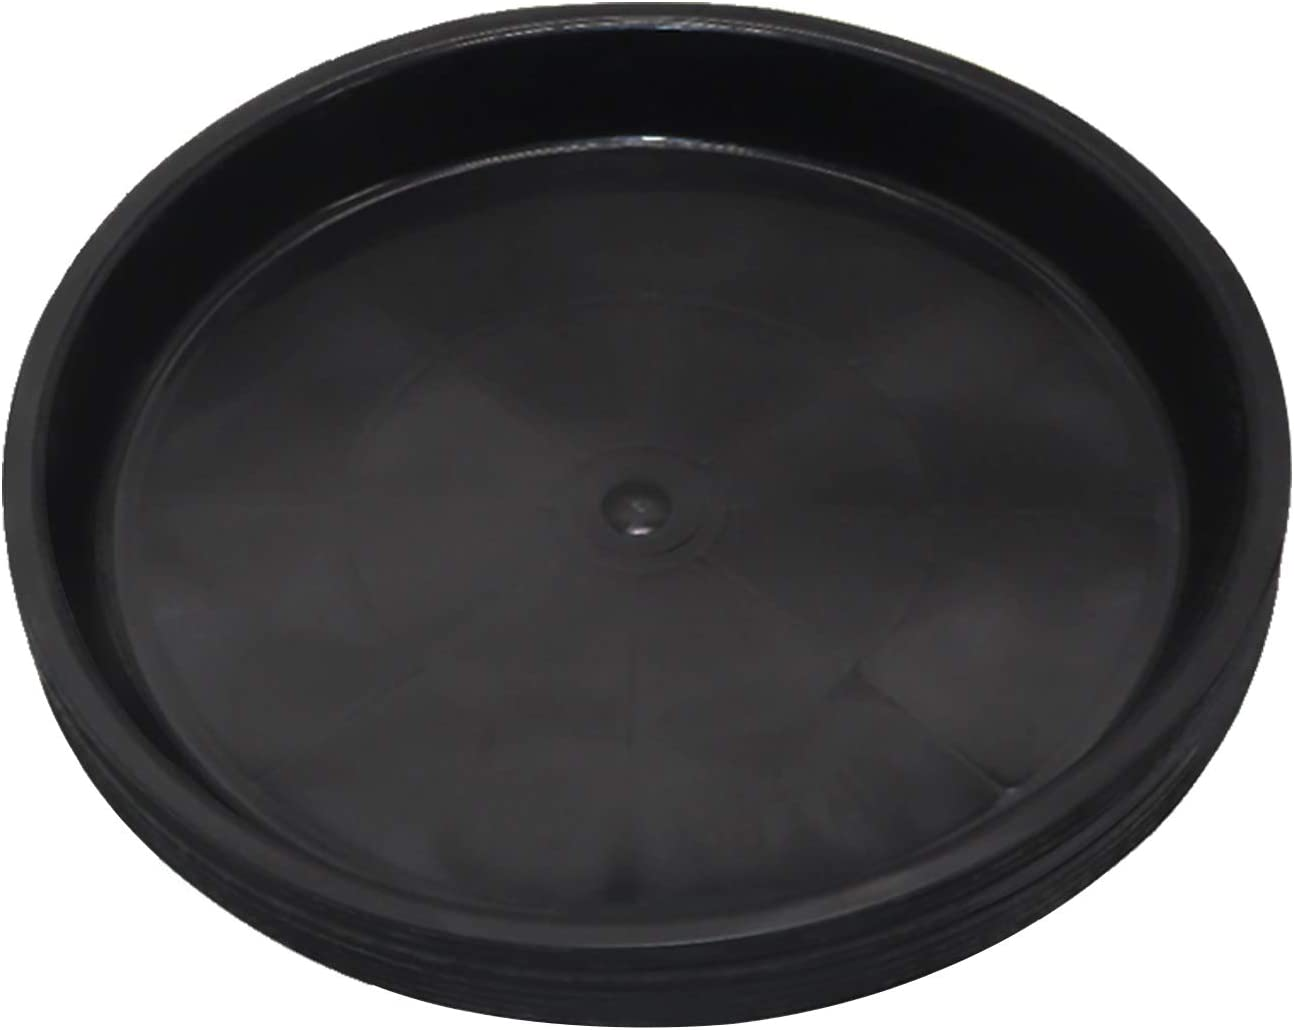 12 pcs Round Plastic Flower Pot Tray, Black Plant Tray, Plant Pot Saucer Tray for Indoor and Outdoor Plants, Potted Drip Tray (6.1inch)